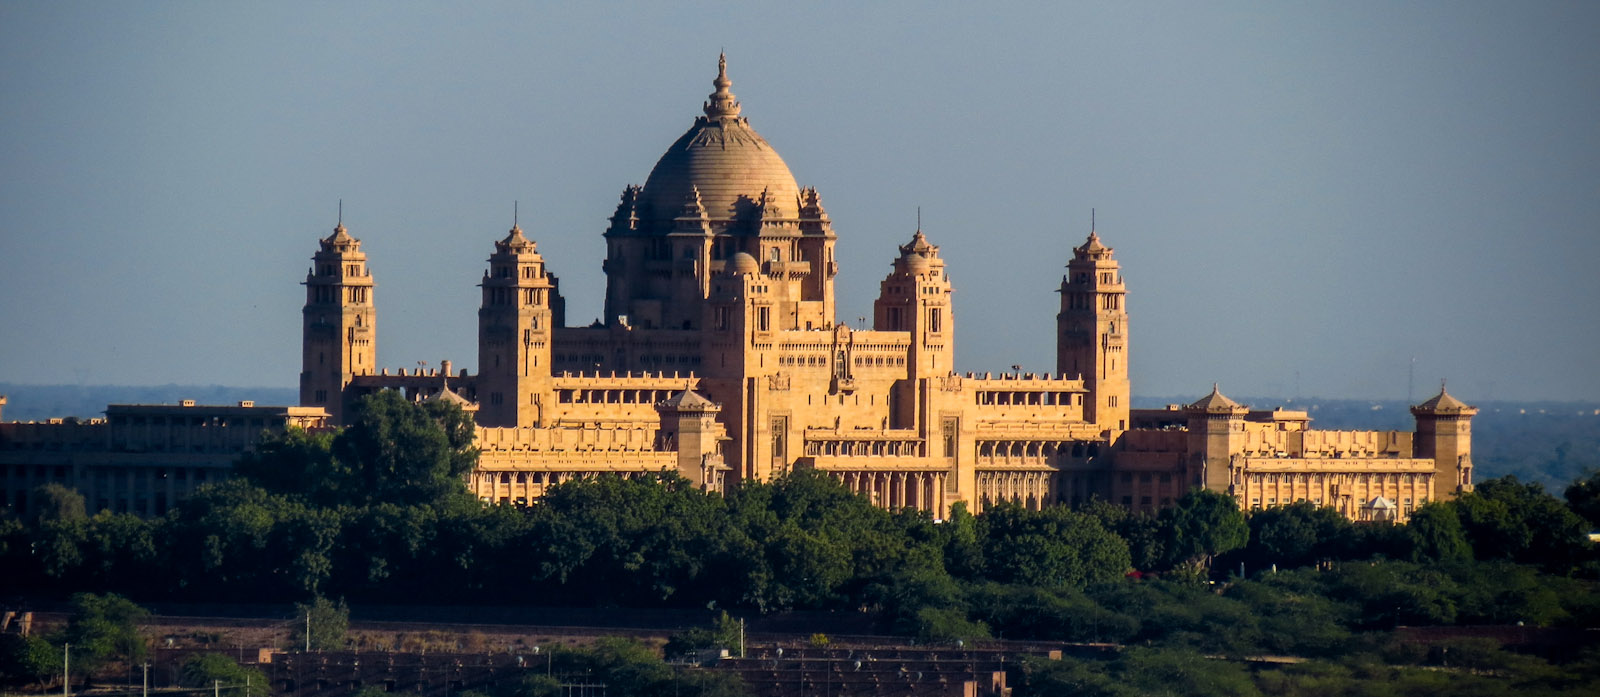 jodphur-palace-from-castle-rajasthan